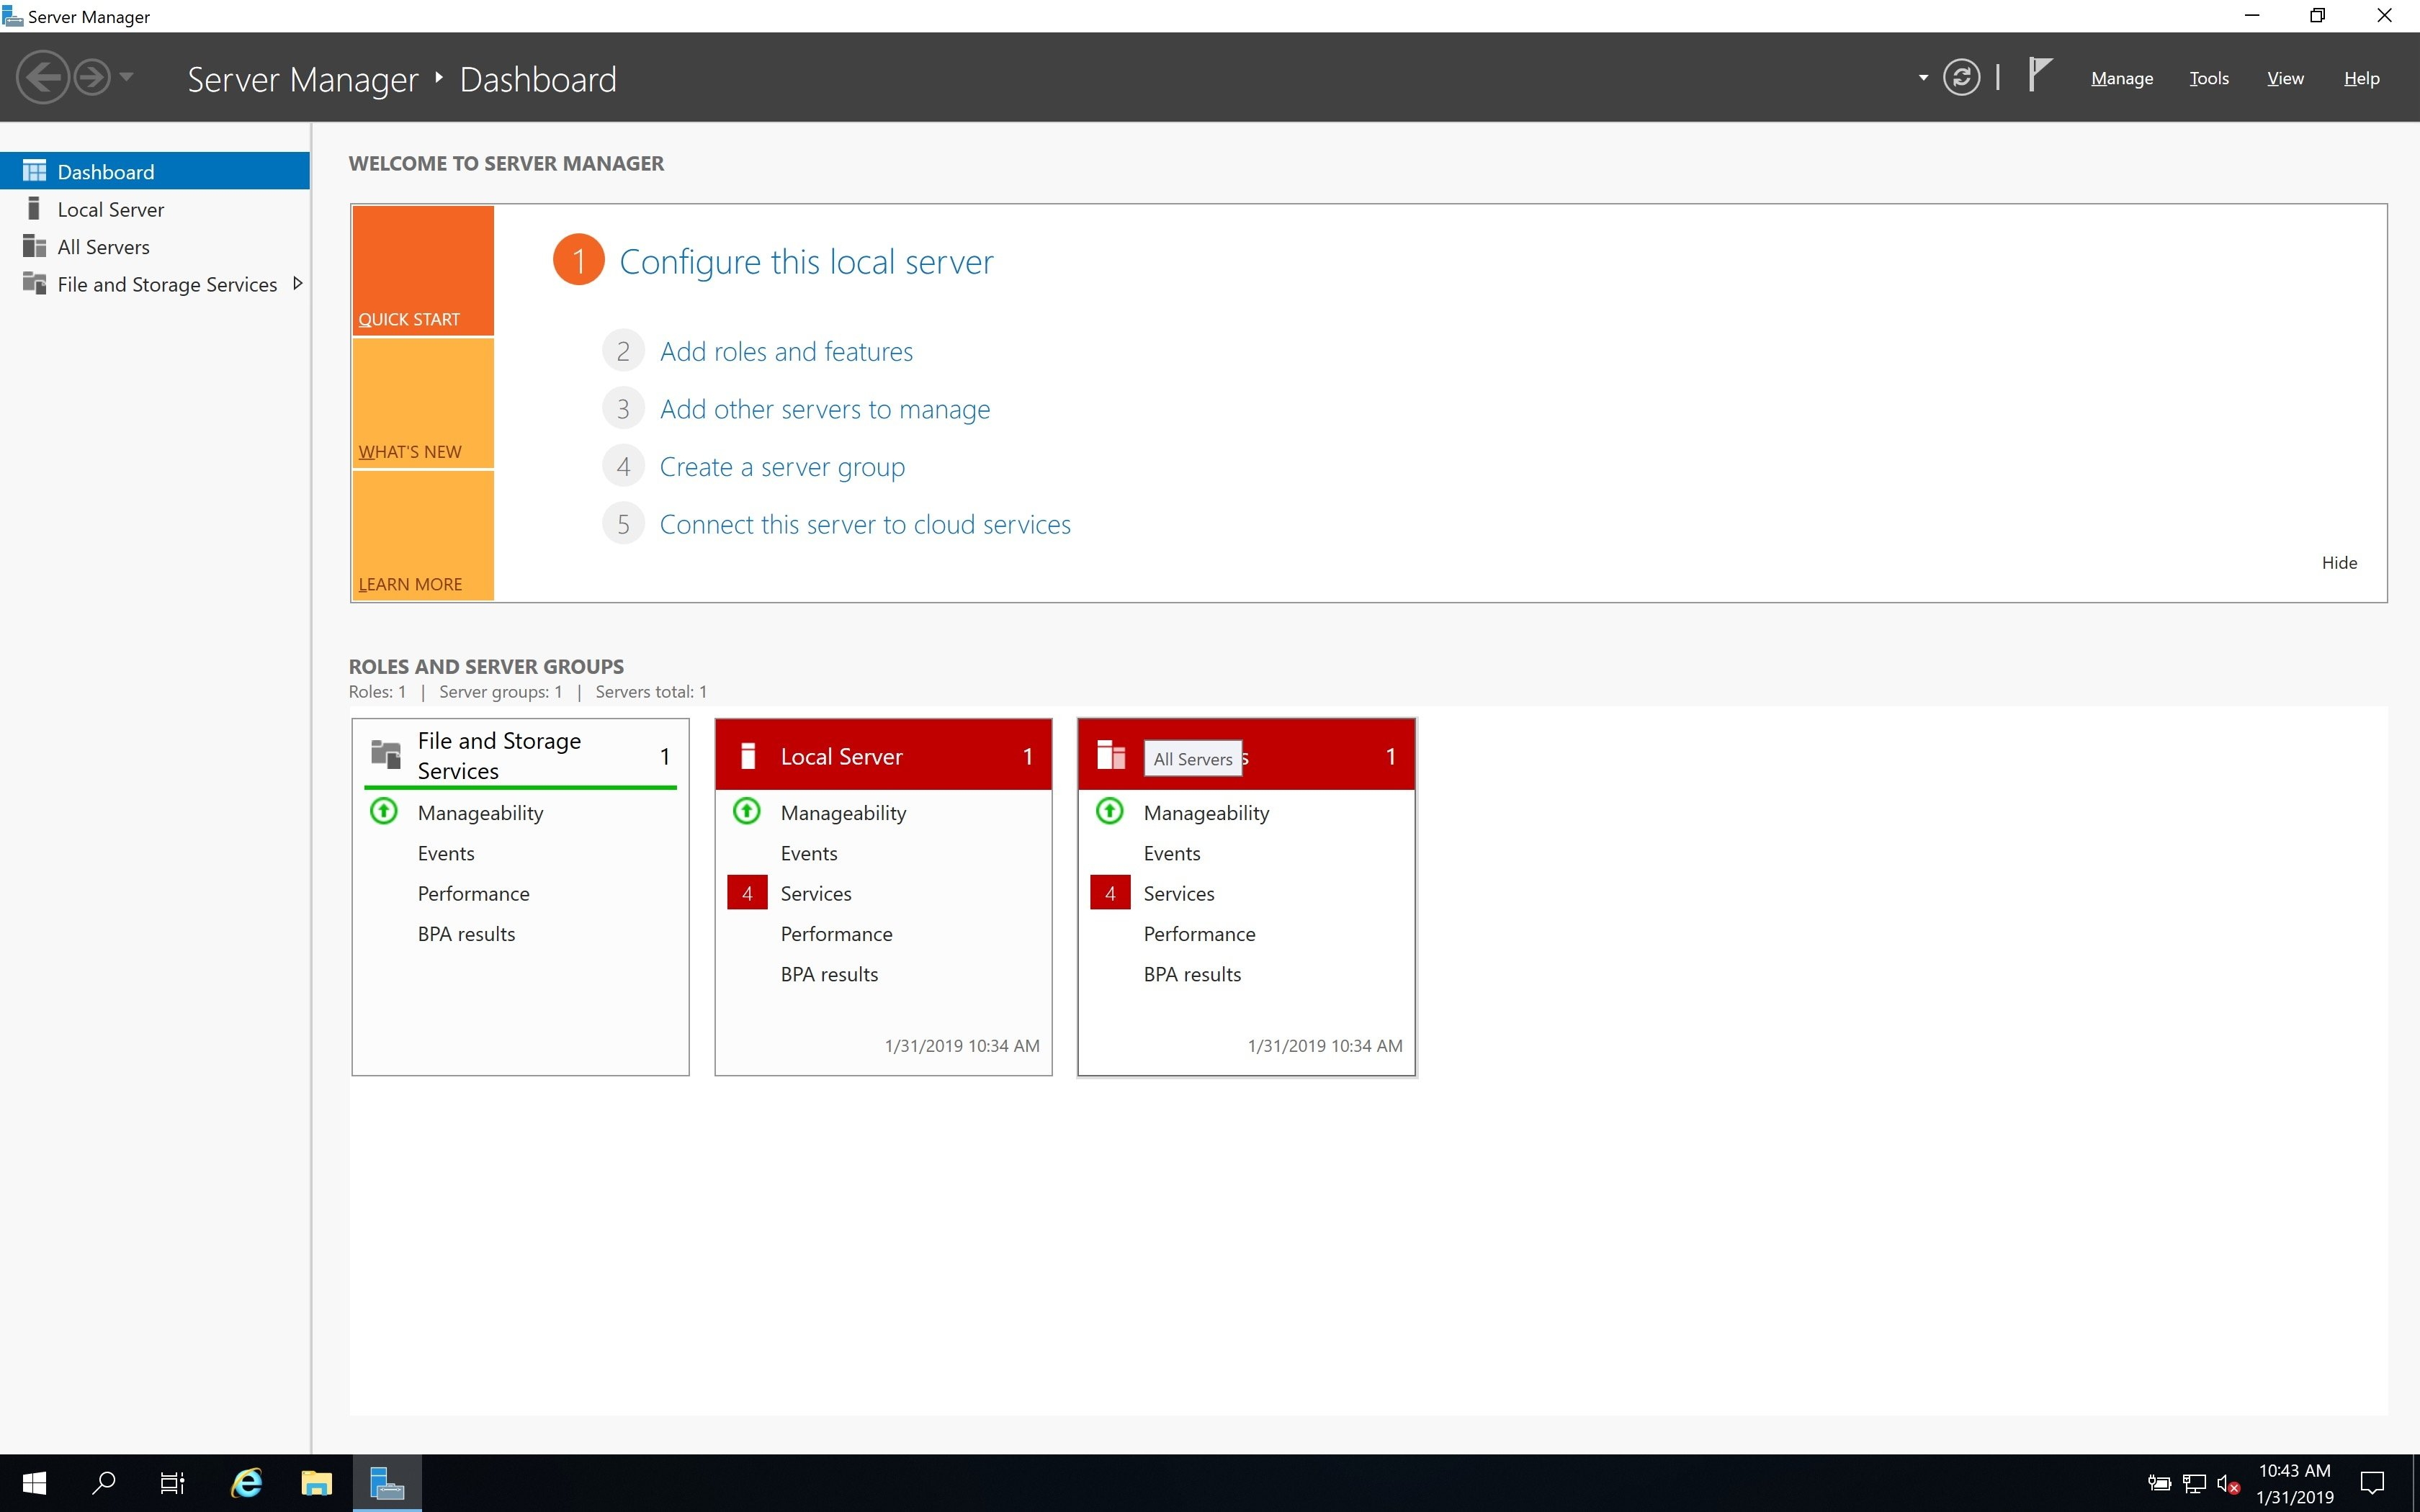 Windows Server 2012 image 7